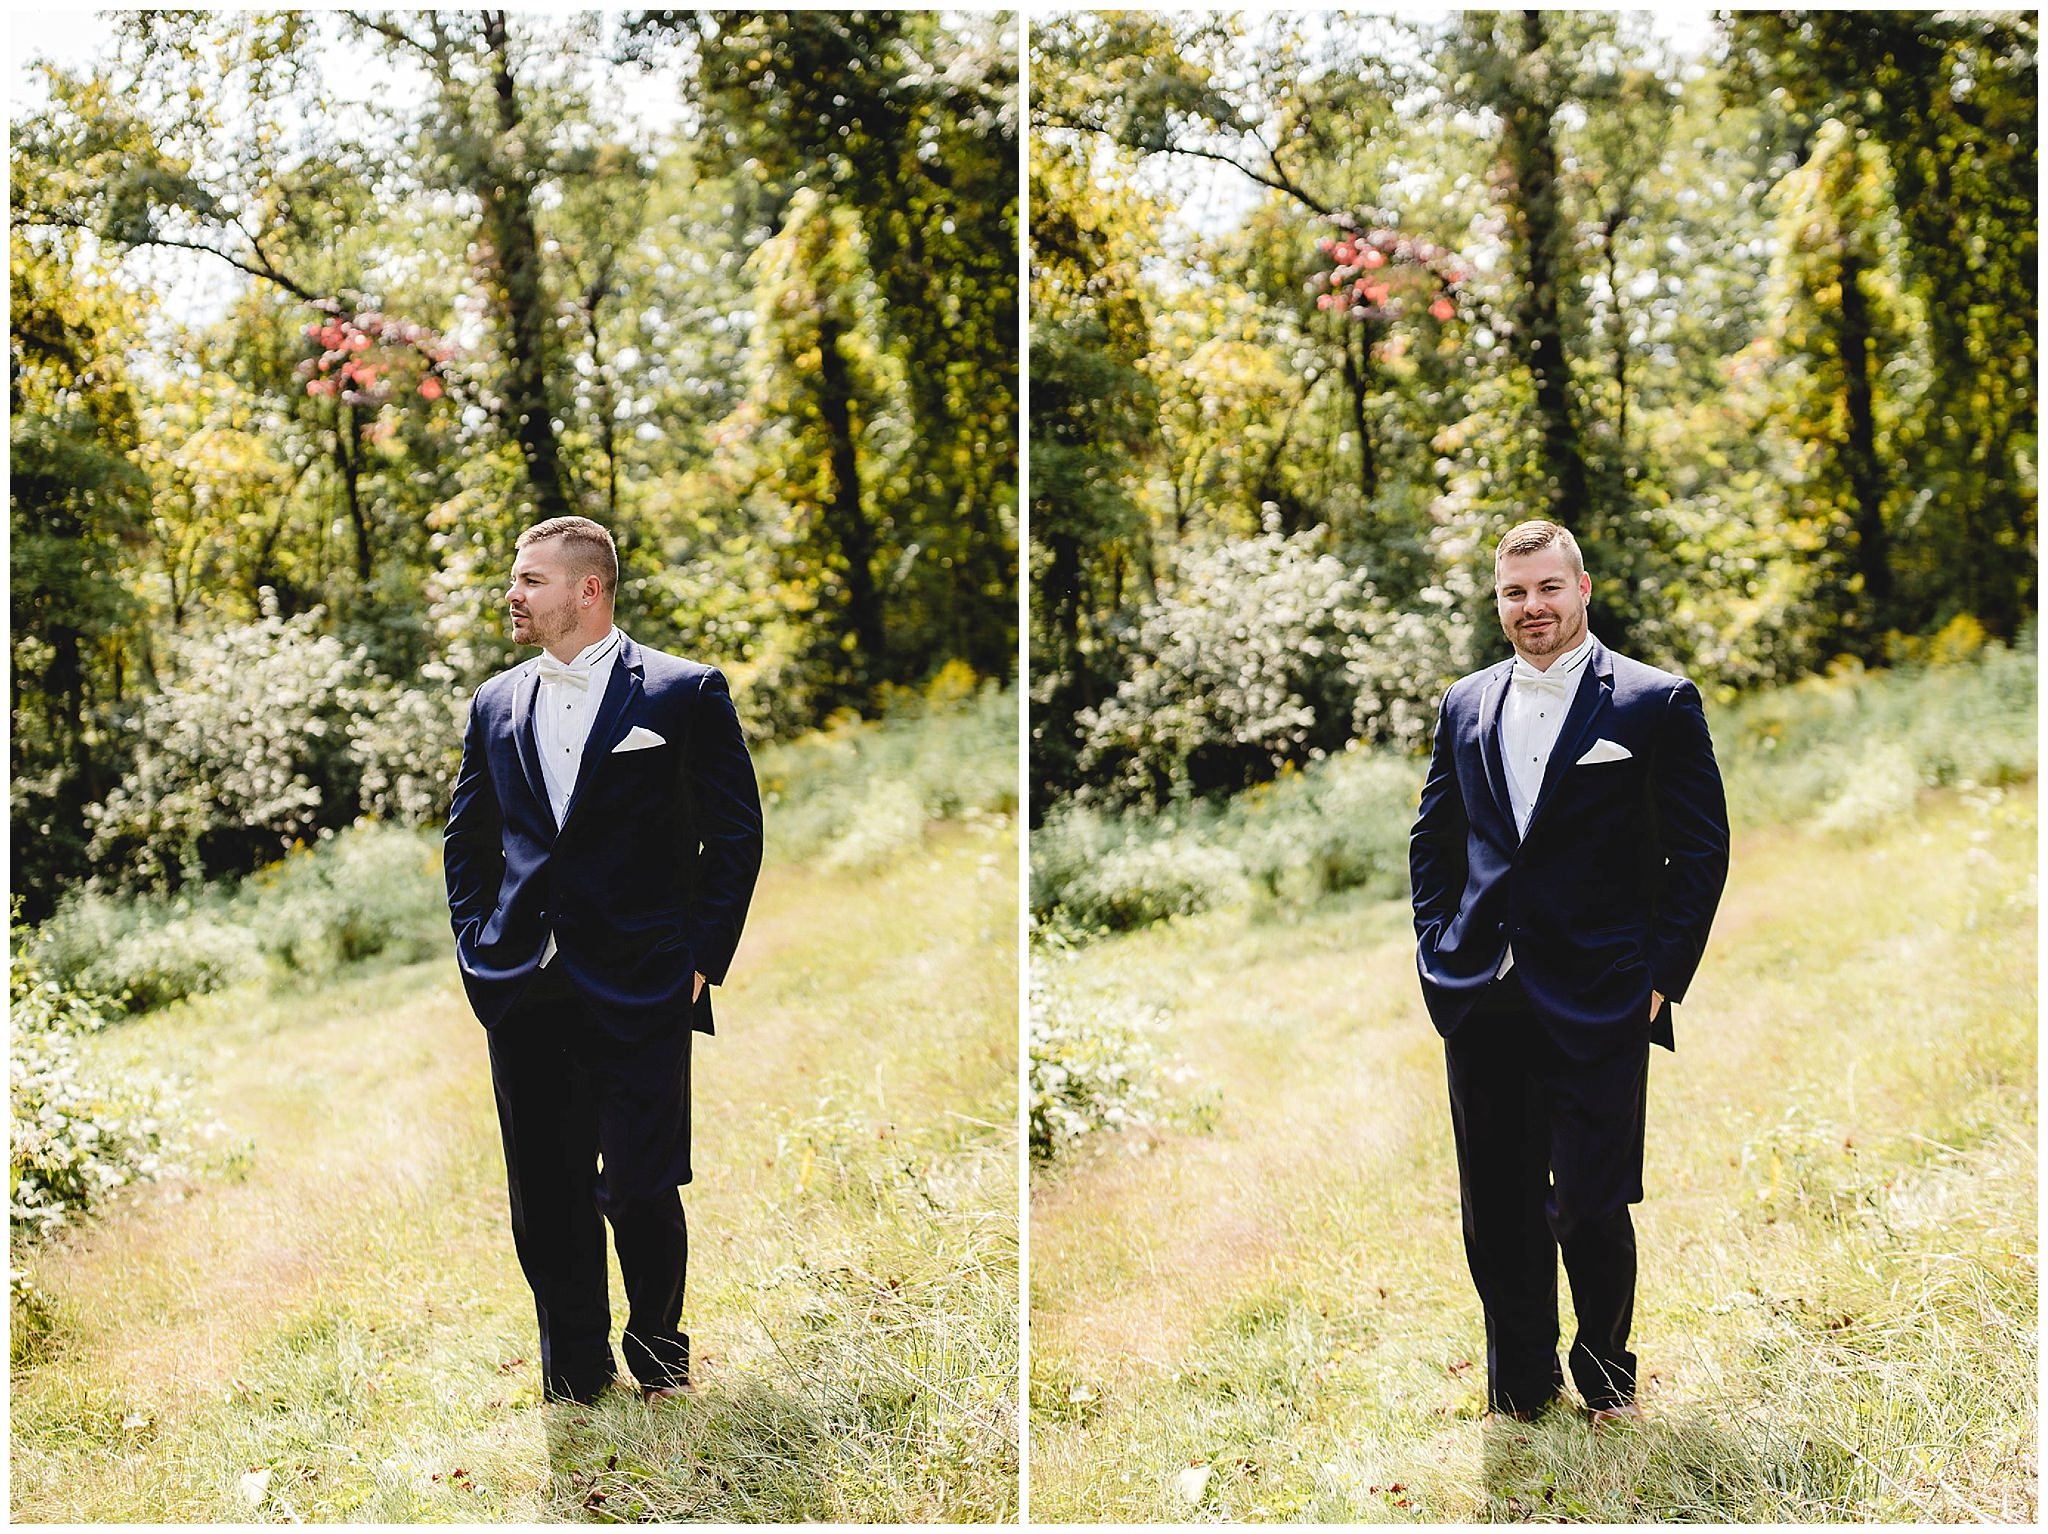 Groom poses in his tux from Men's Wearhouse before his wedding